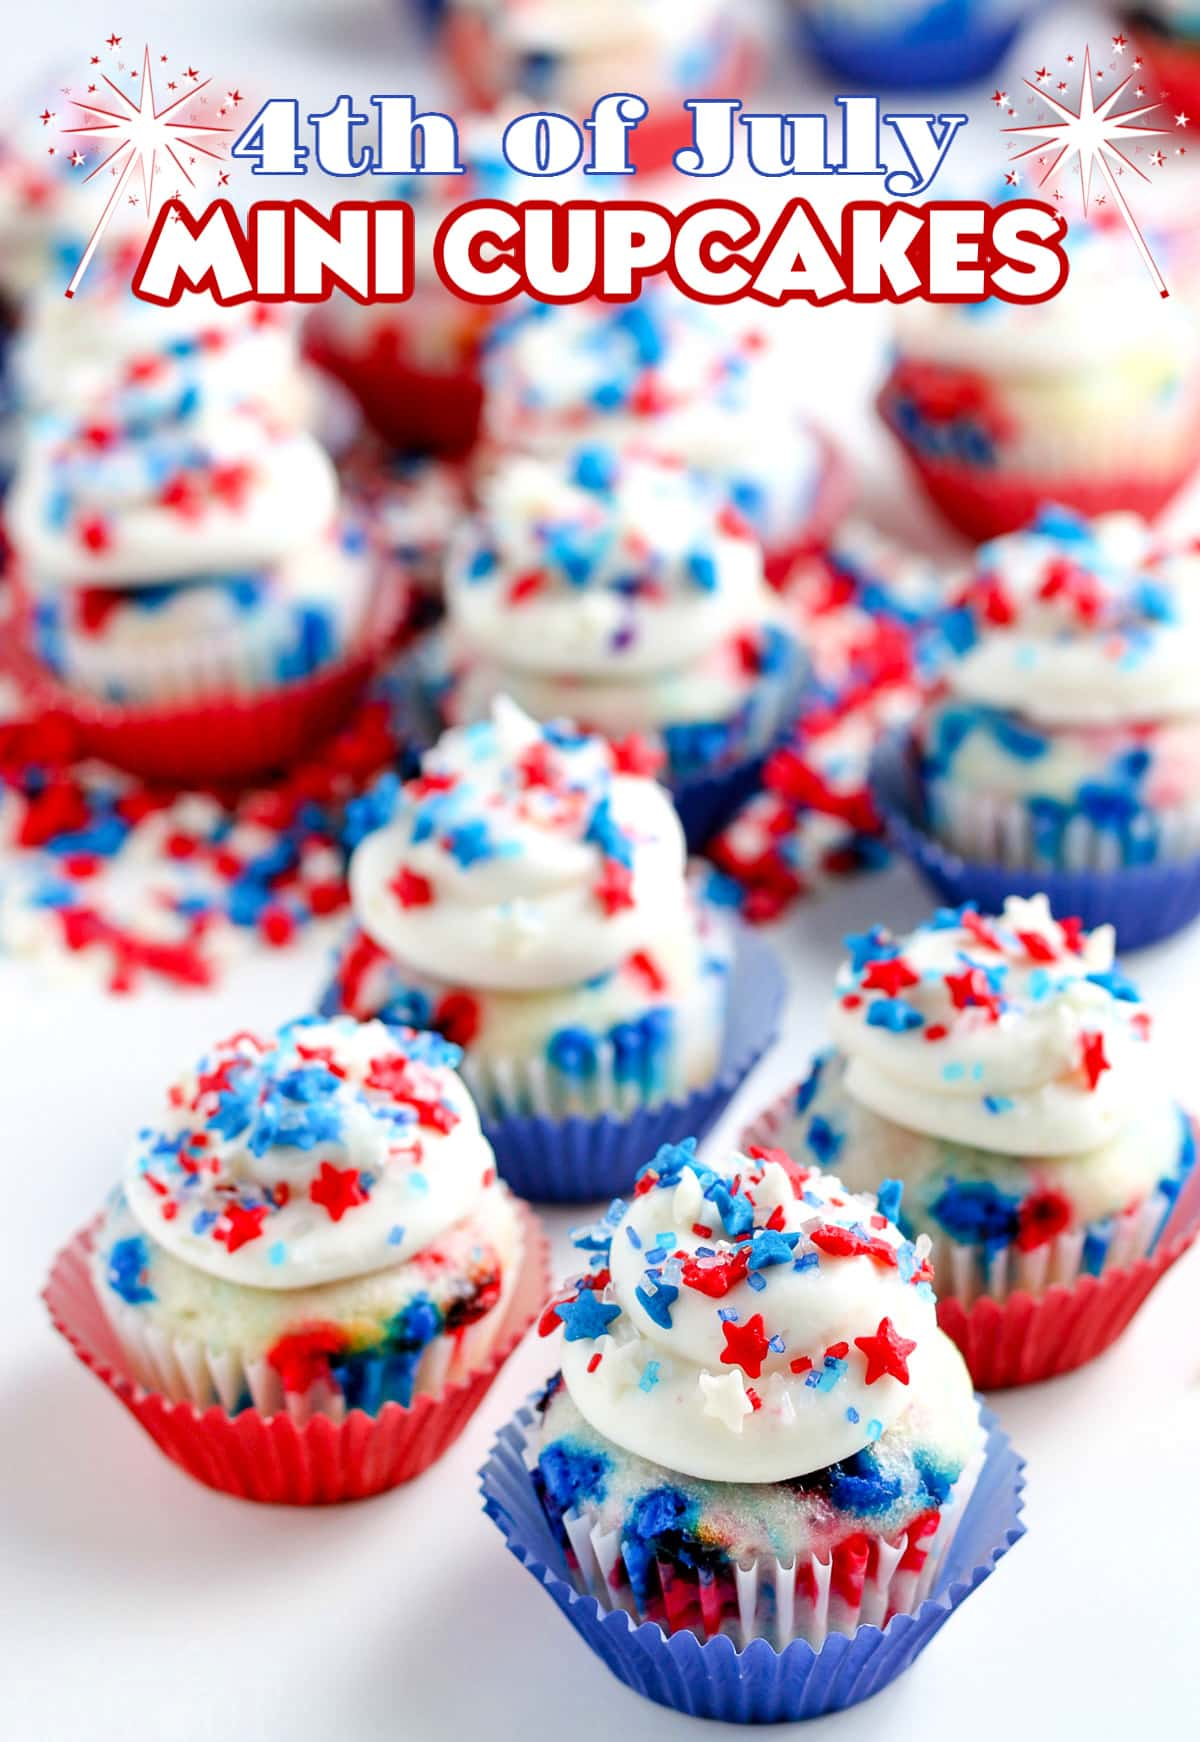 4th of July Mini Cupcakes with star sprinkles and text overlay